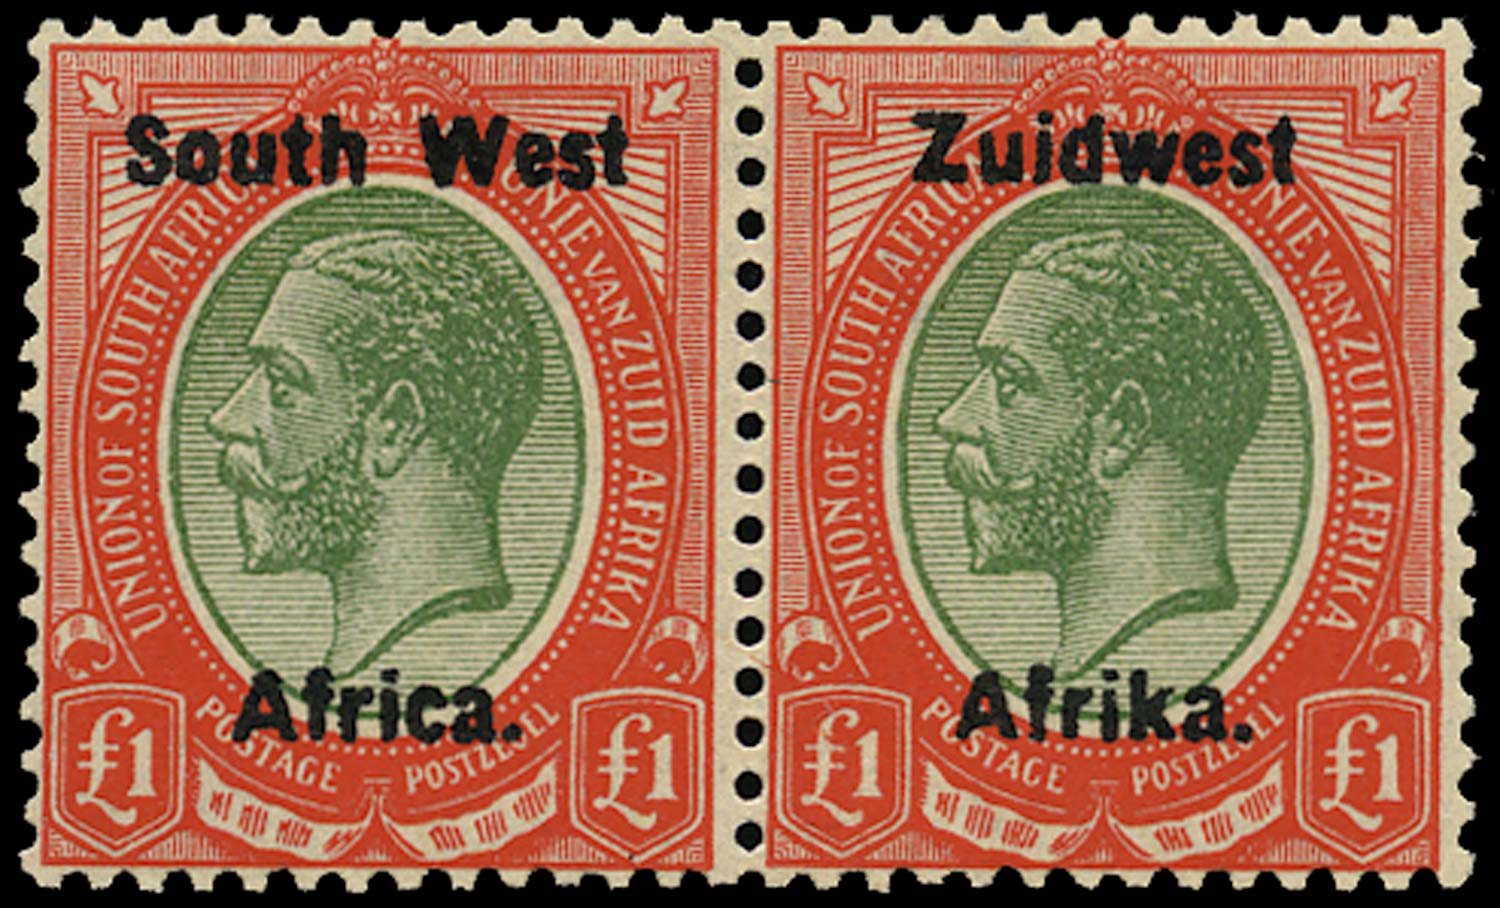 SOUTH WEST AFRICA 1923  SG27 Mint £1 green and red from overprint setting III